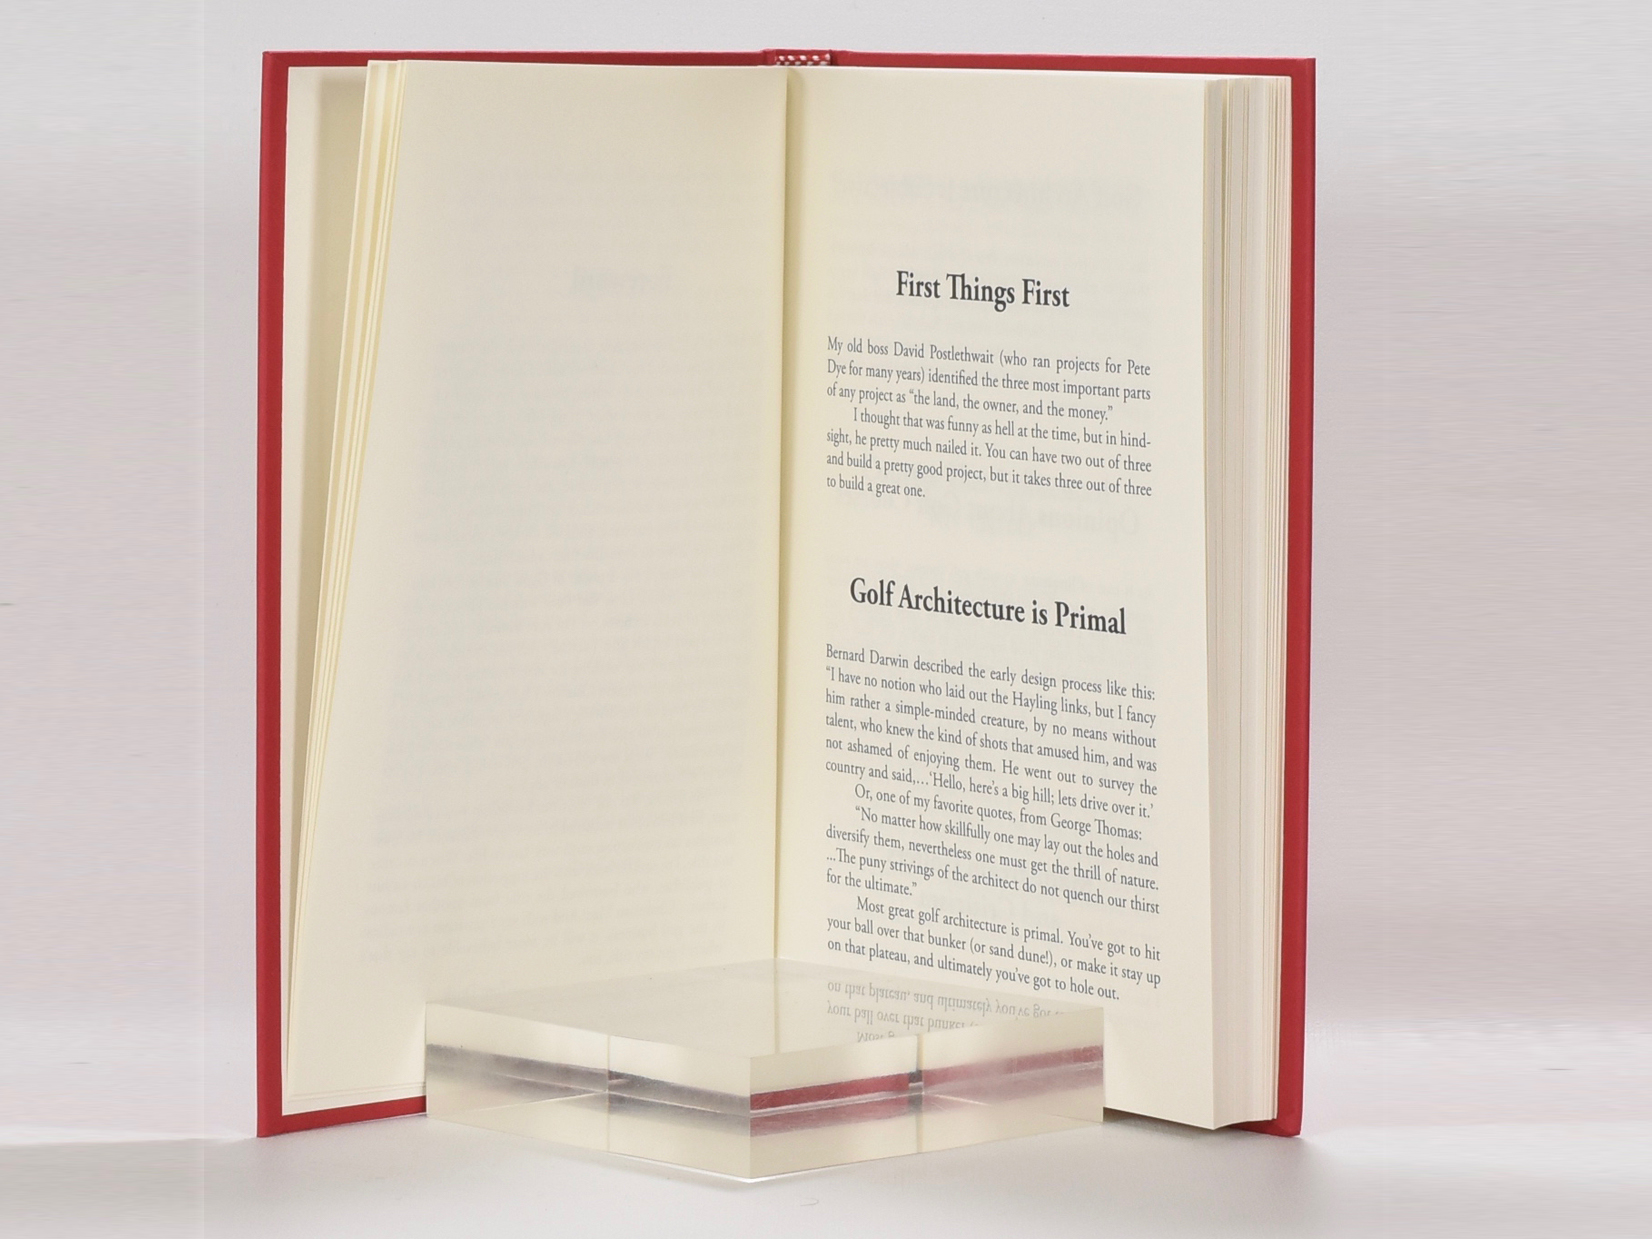 Tom Doak's Little Red Book of Golf Course Architecture by Tom Doak on Fine  Golf Books